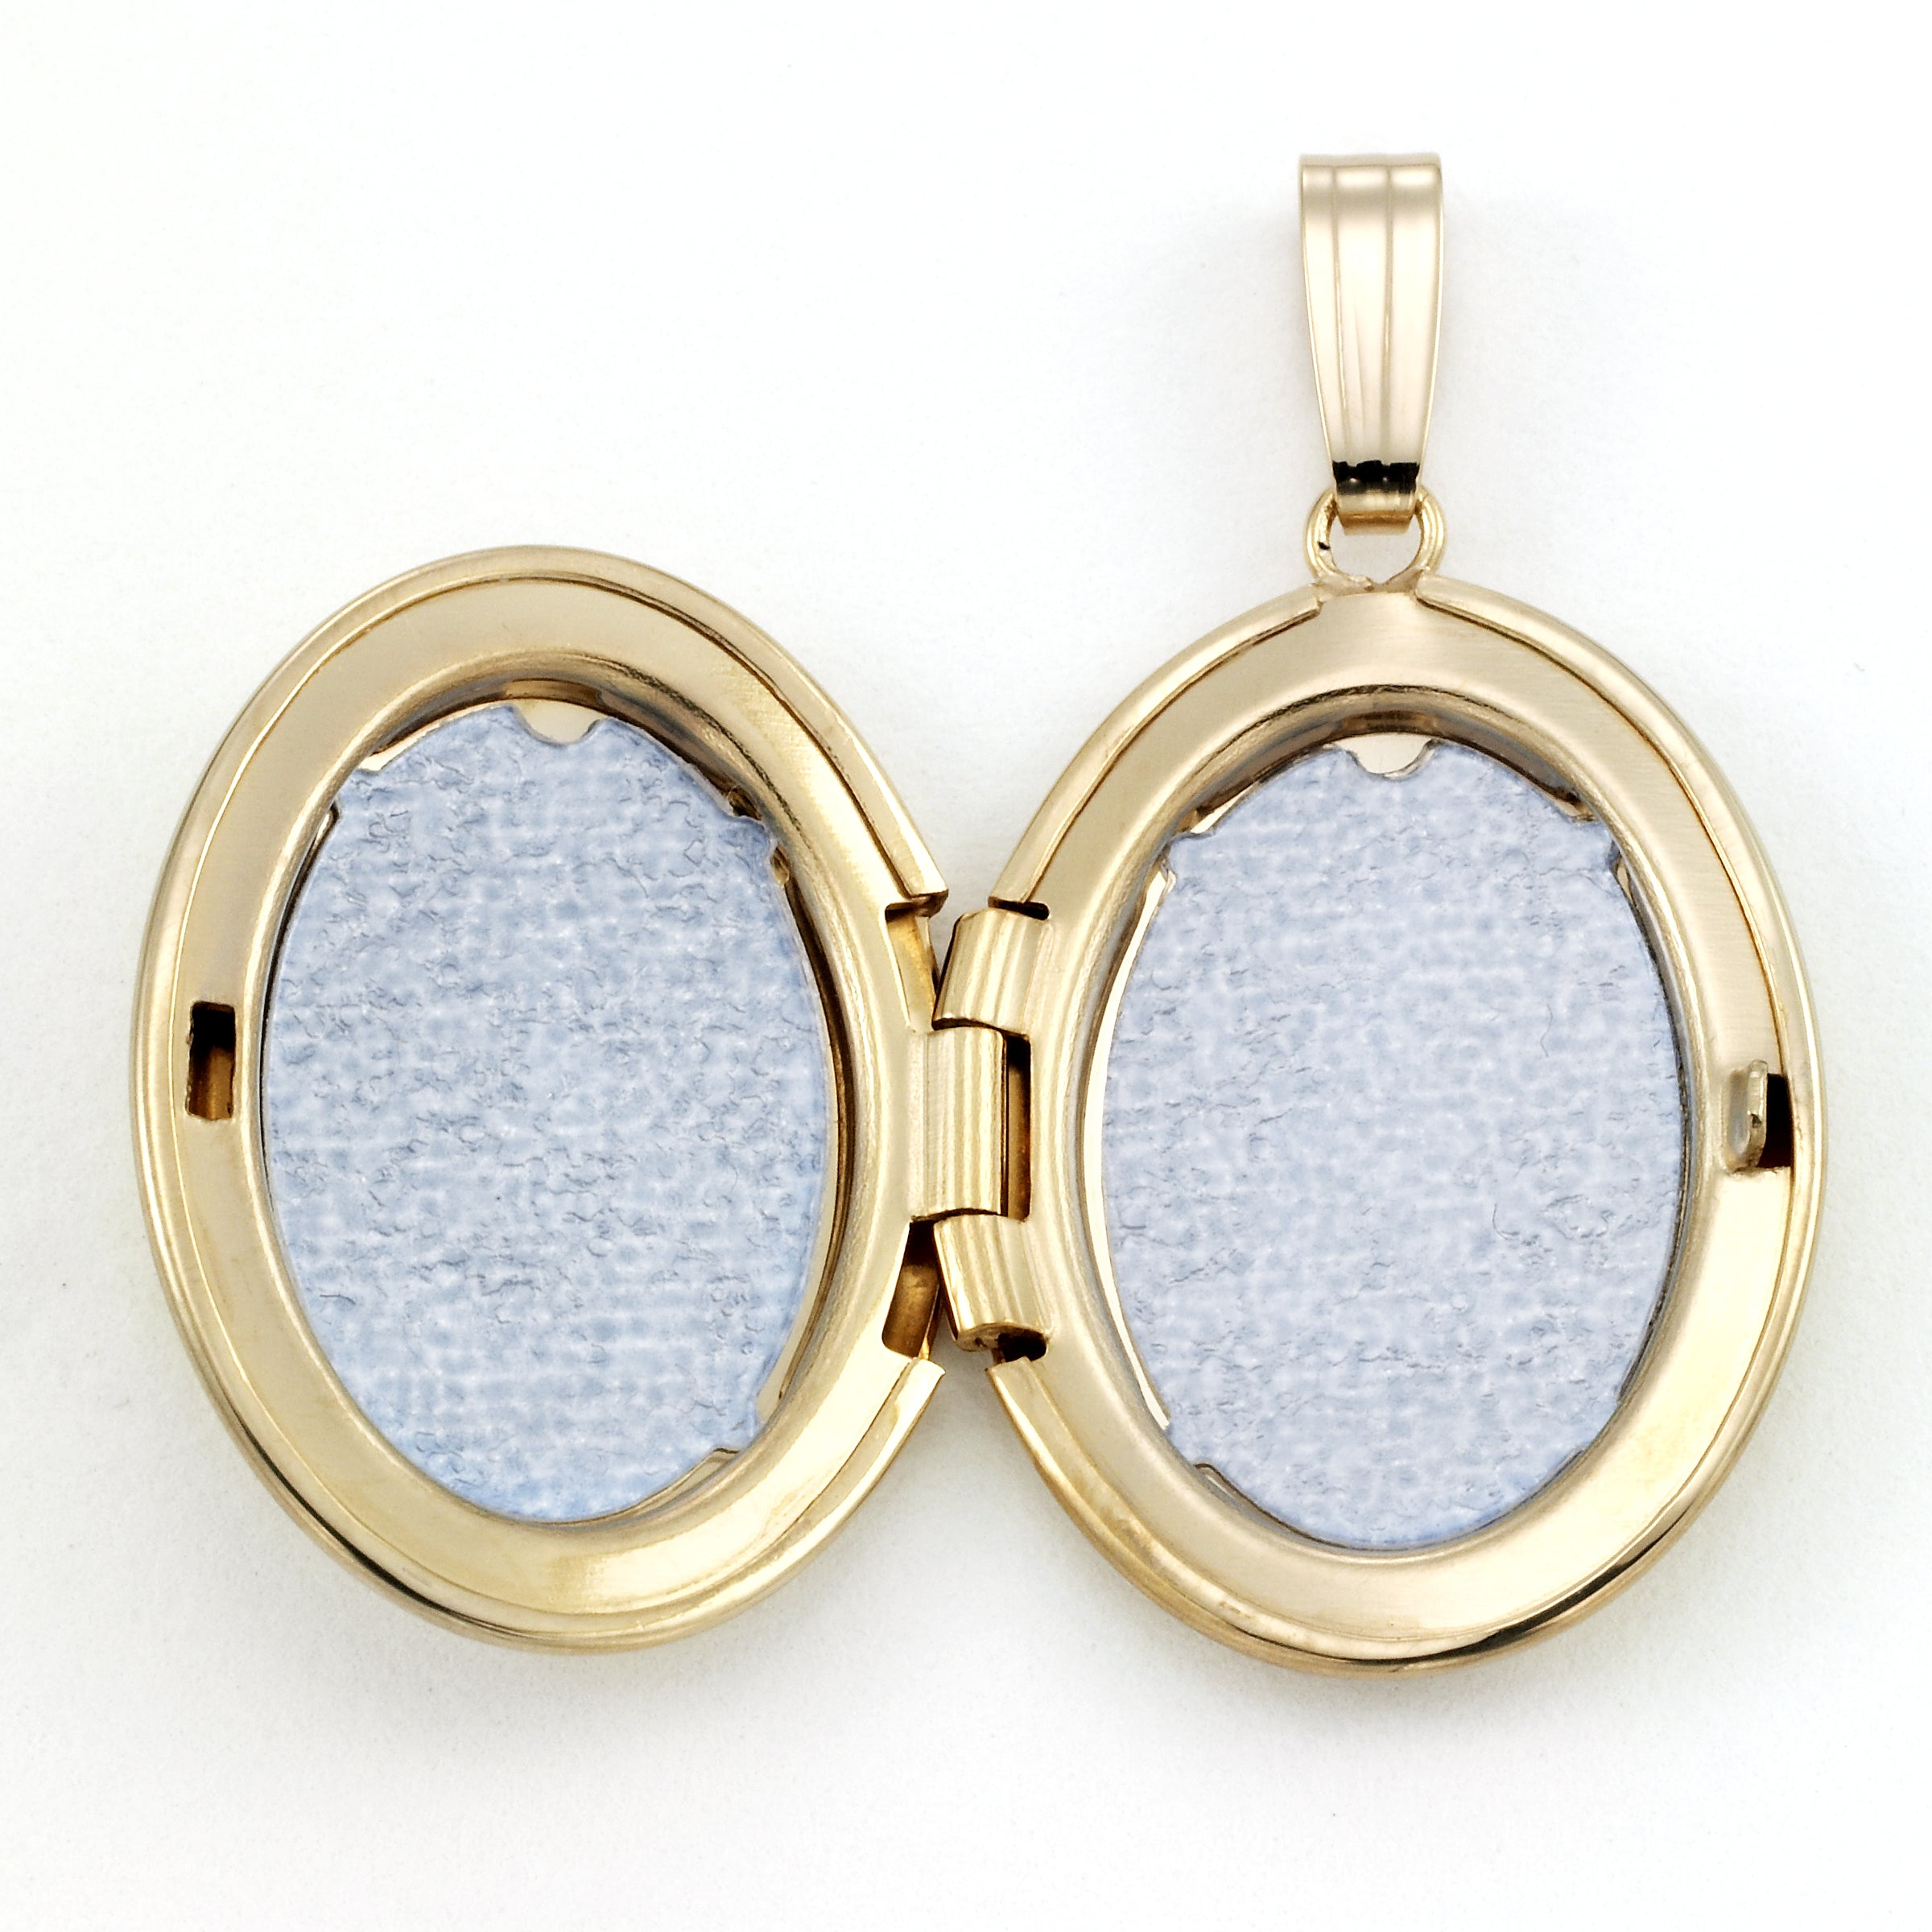 Oval Locket, Diamond Accent, 14 Karat Yellow Gold